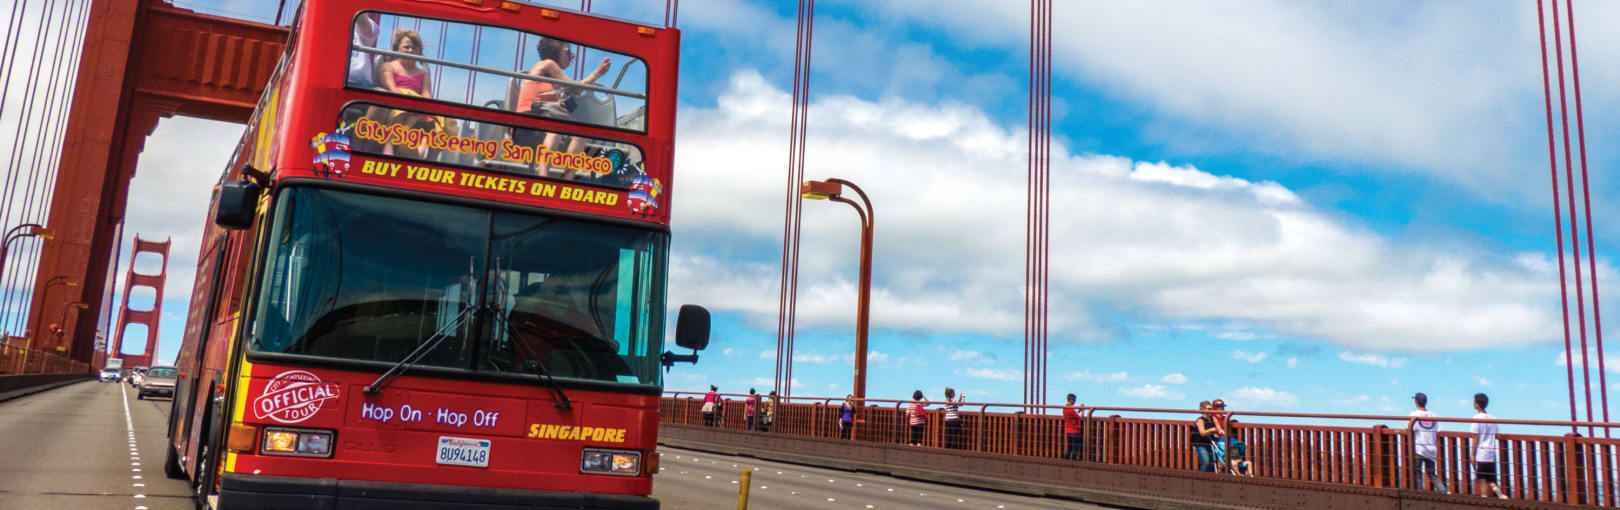 Official City Sightseeing tour of San Francisco. Double Decker City Bus Tours Hop On Hop Off, Alcatraz, Wine Country and more.